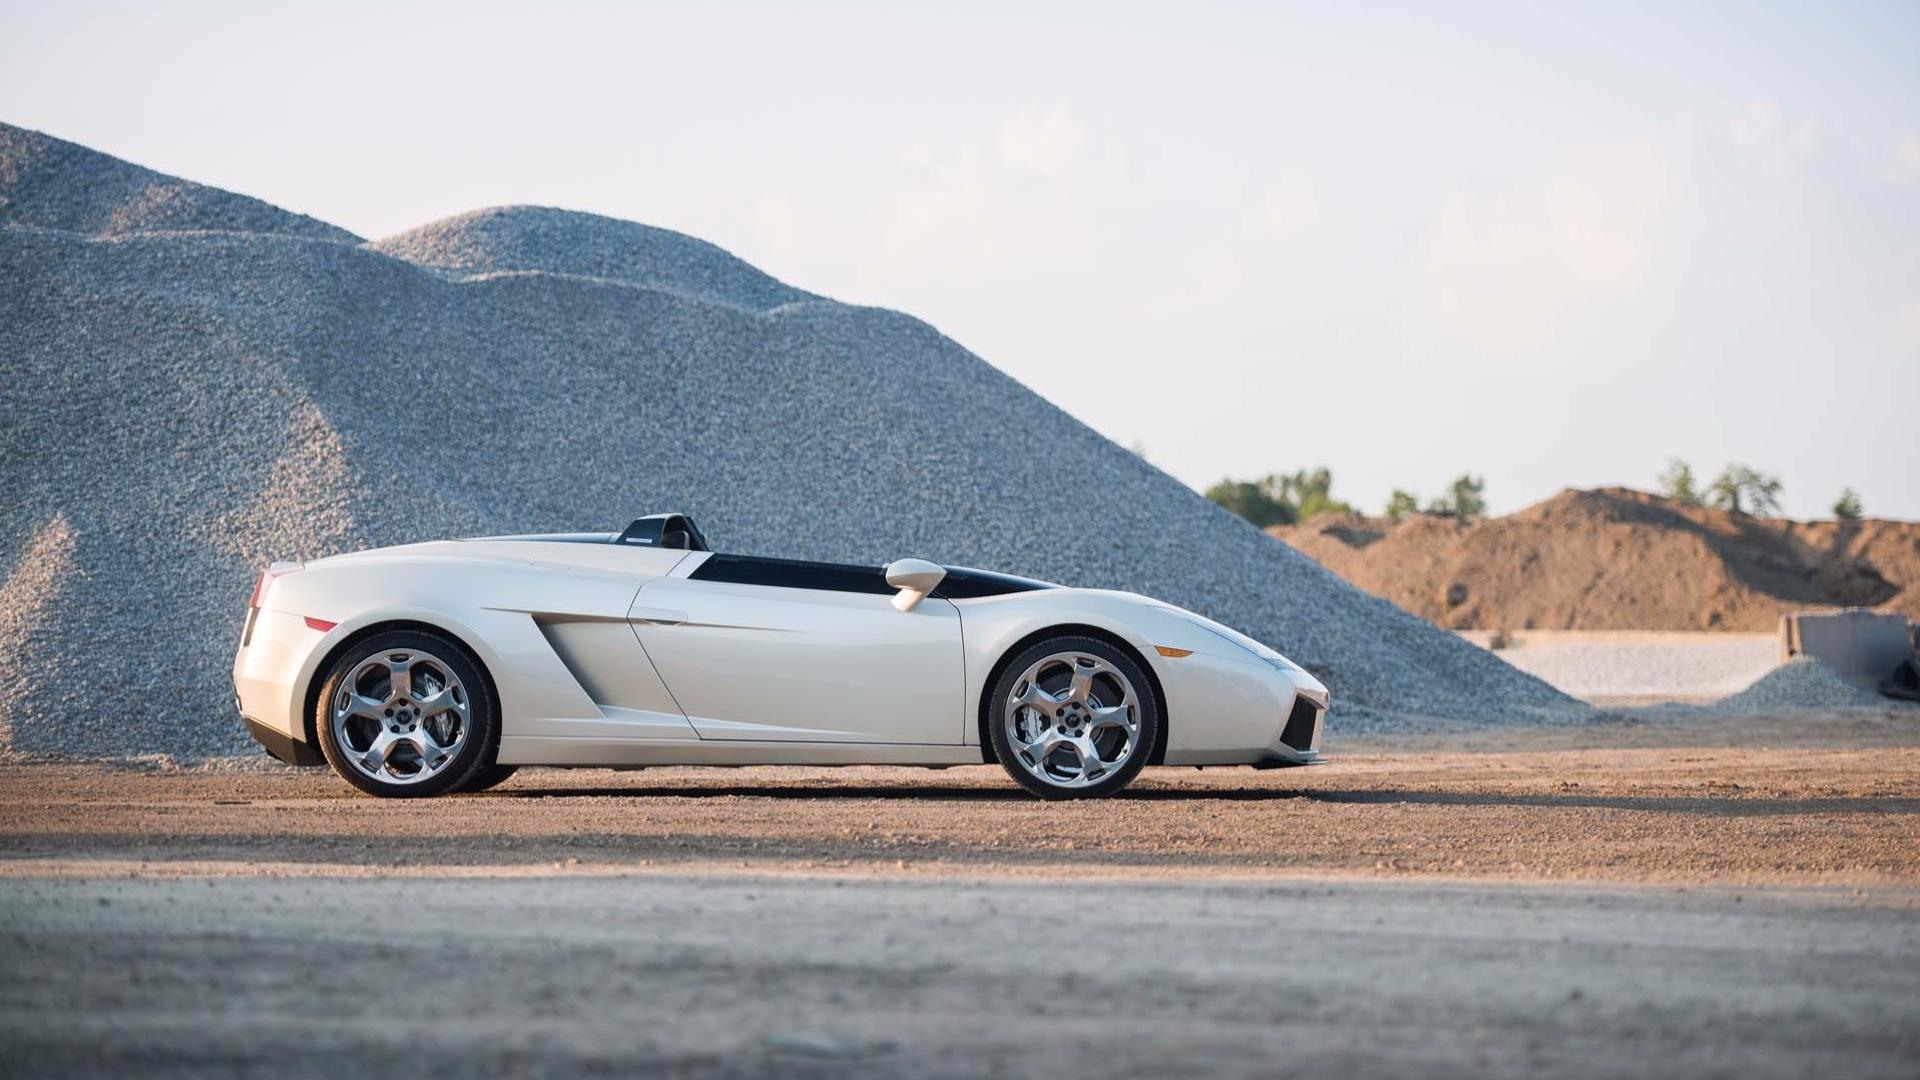 Unique Lamborghini Concept Is What Supercar Dreams Are Made Of